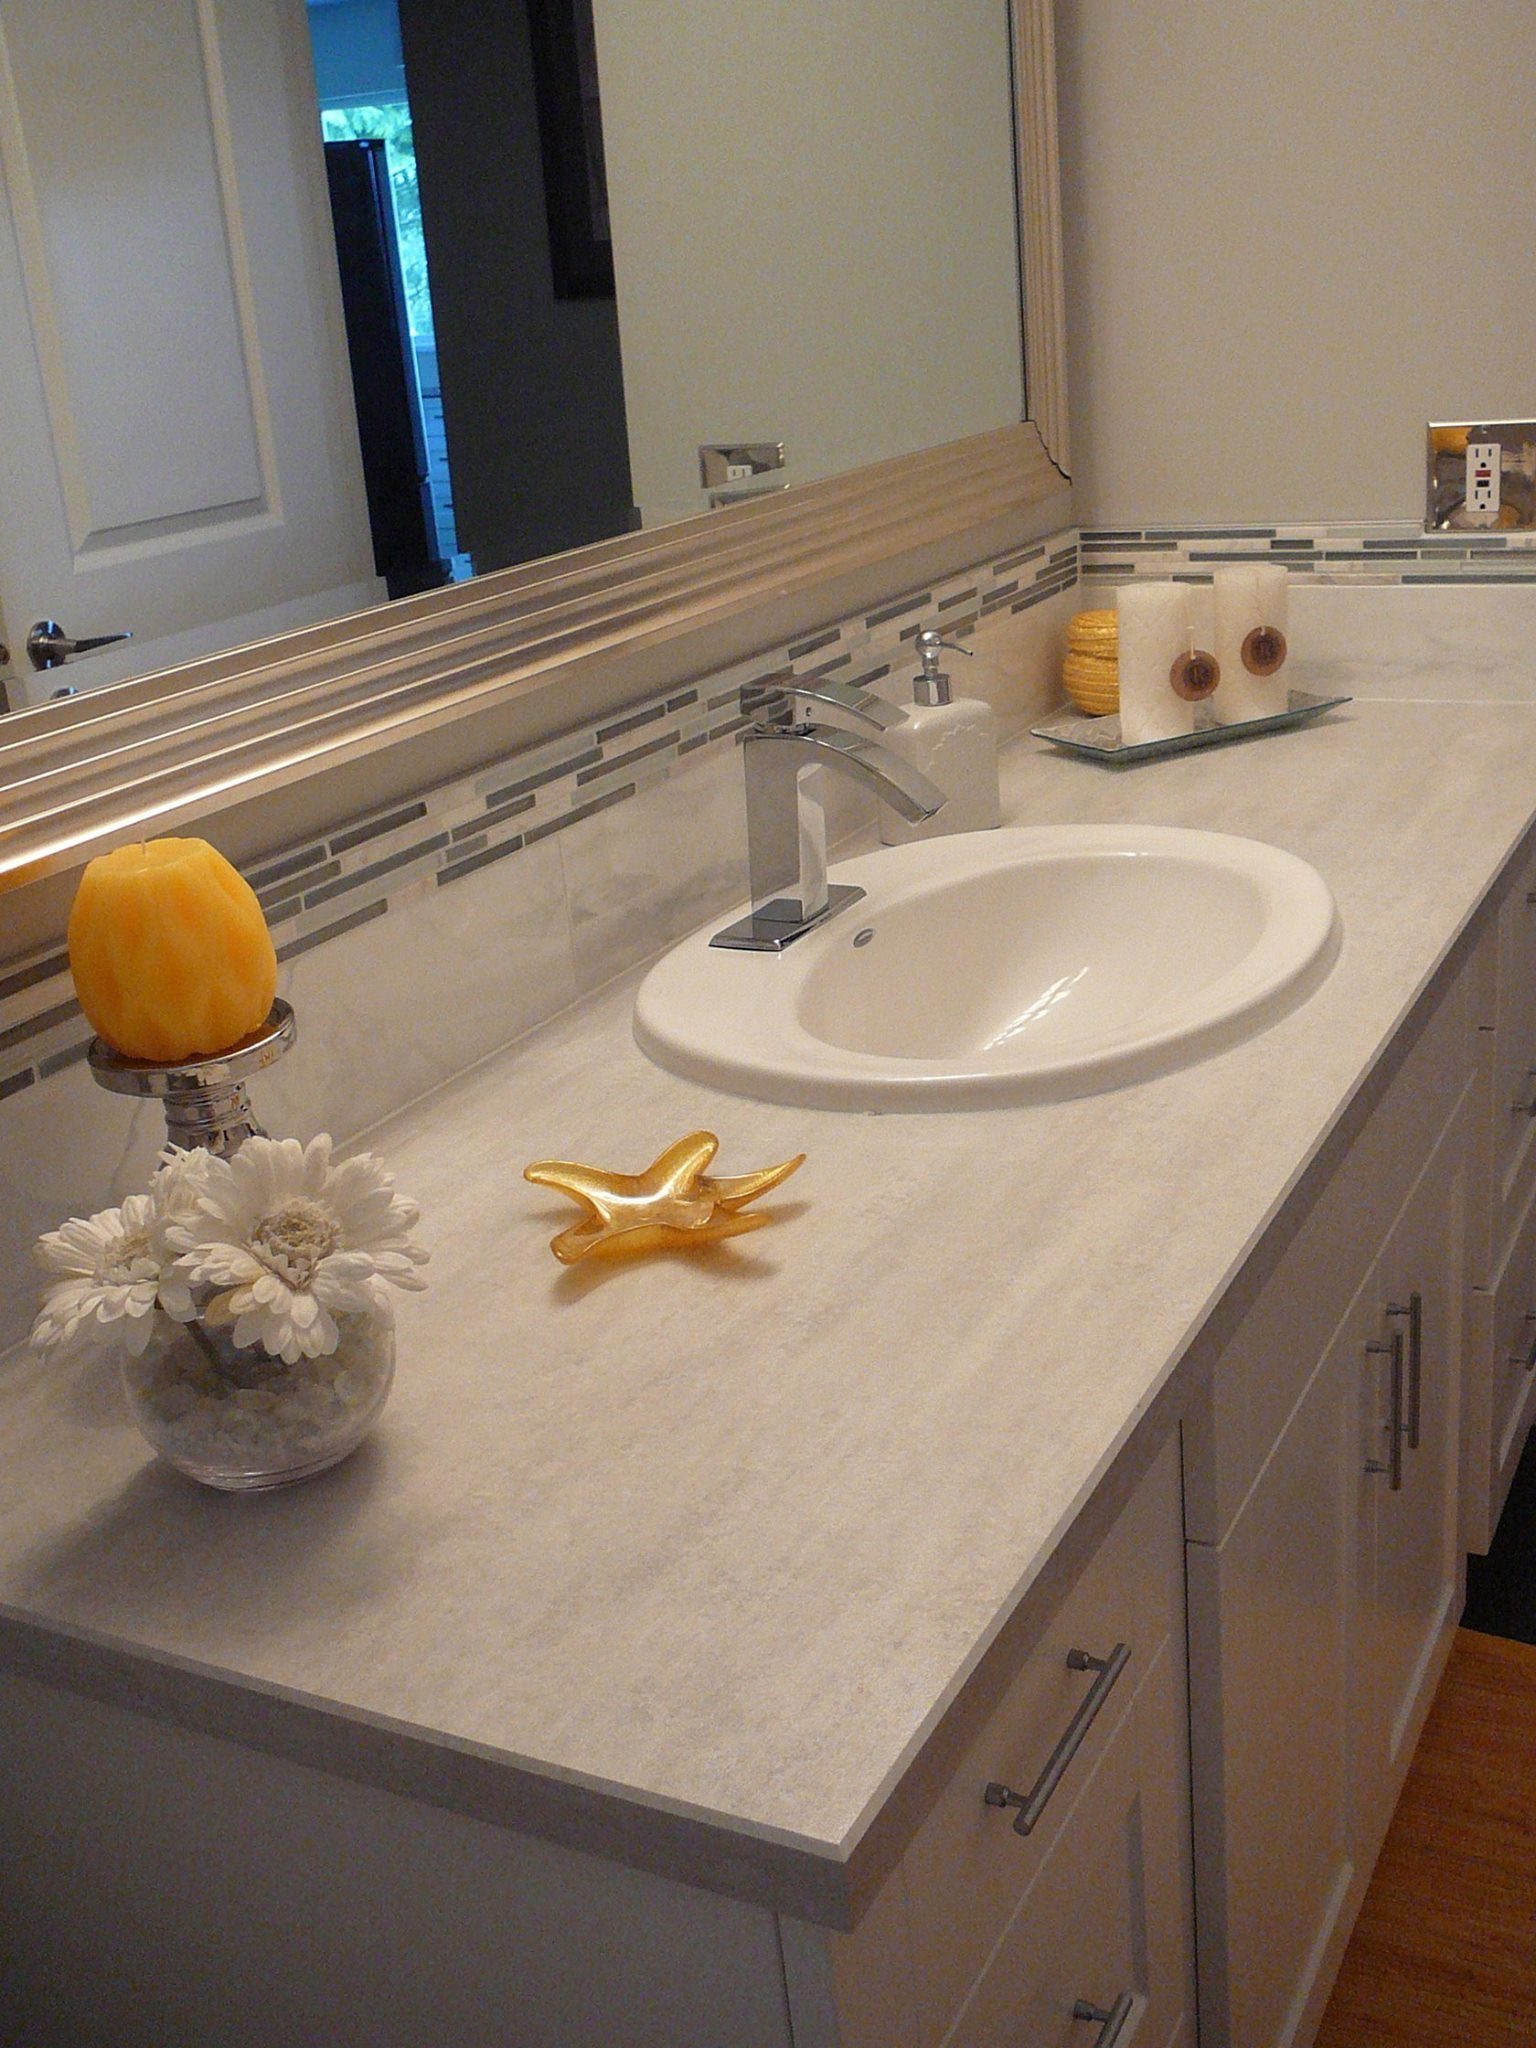 17 Superb Wooden Counter Top Cupboards Ideas Countertops Diy Countertops Laminate Countertops